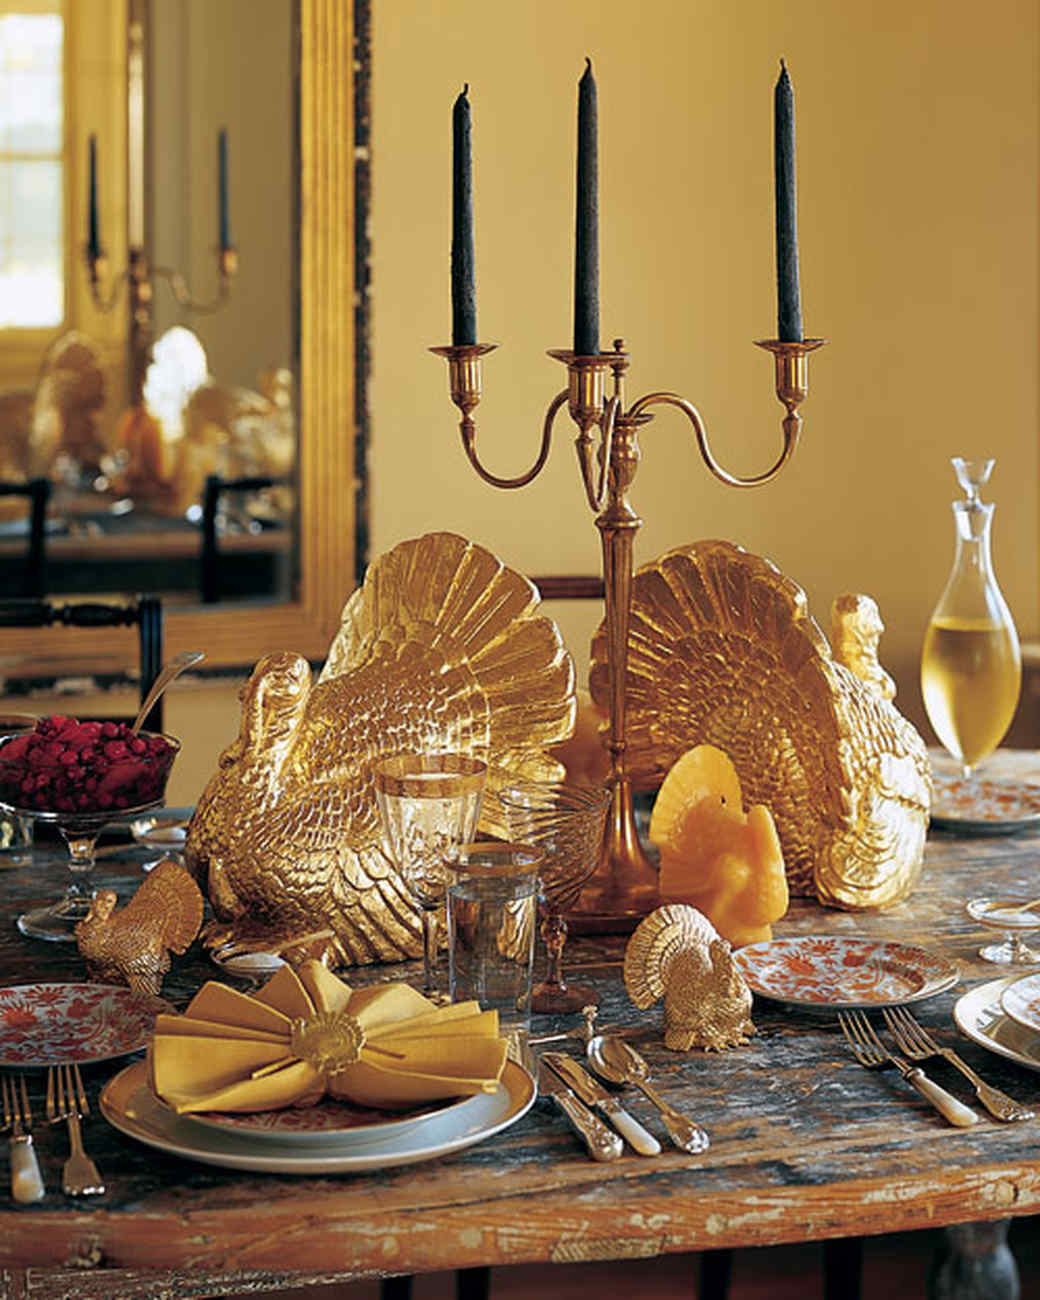 Thanksgiving turkey decor - Gilded Turkey Centerpiece